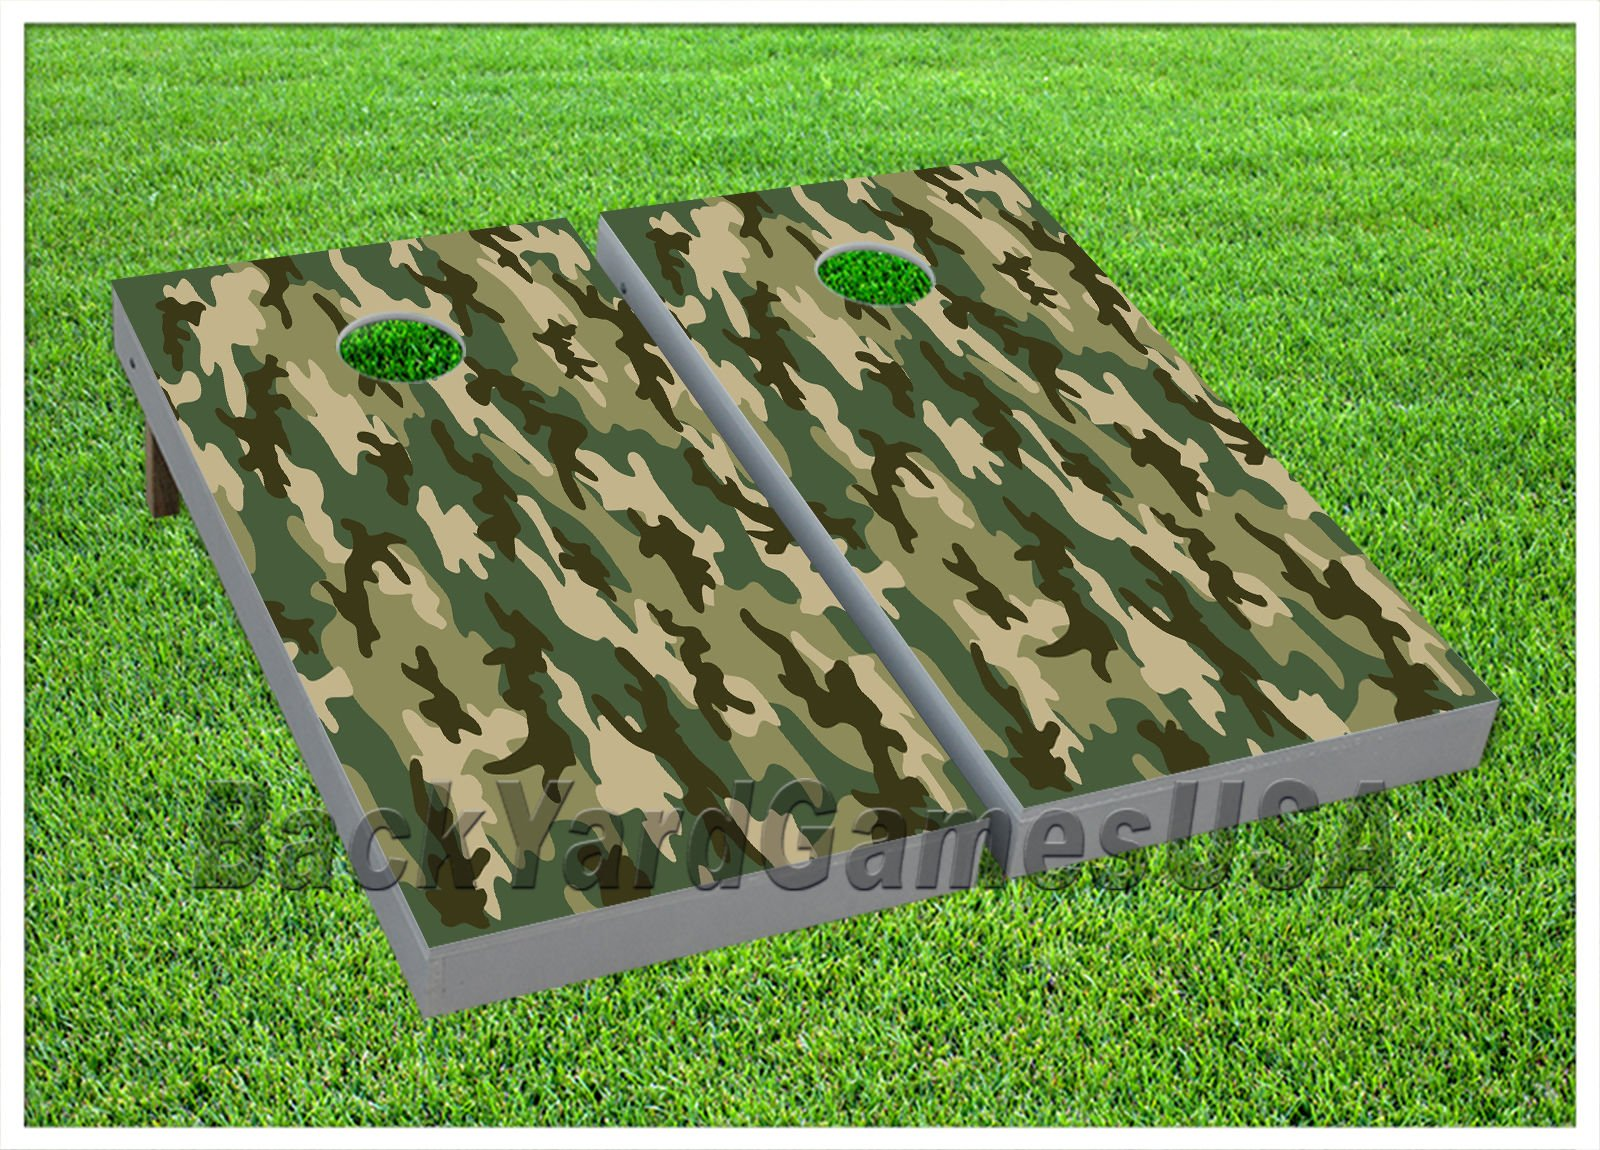 CORNHOLE BEANBAG TOSS GAME w Bags Game Boards Camo Green Black Army Set 909